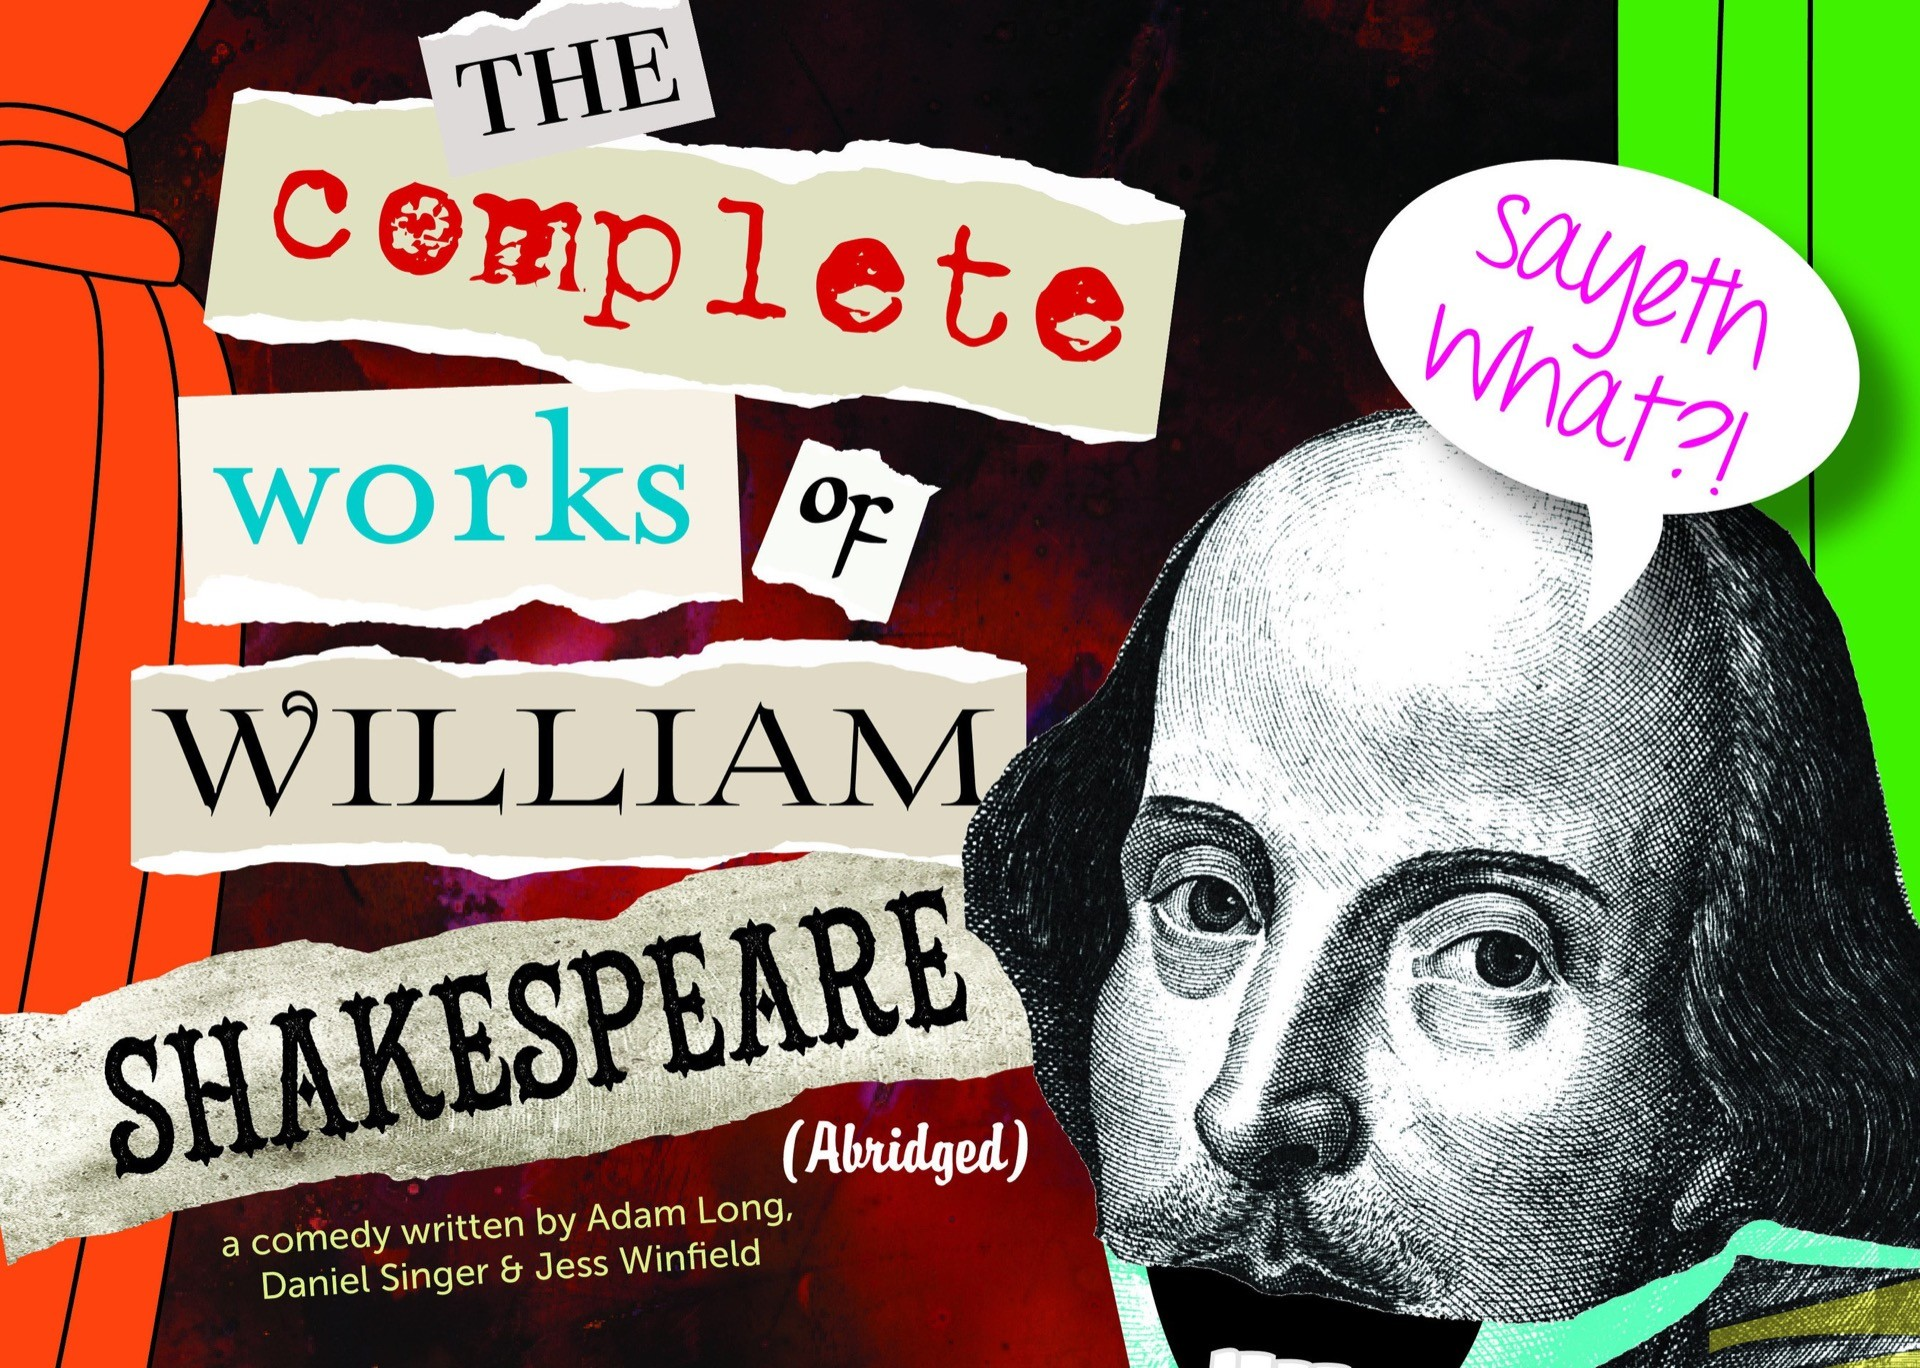 the complete works of william shakespeare The complete works of william shakespeare abridged – trinity theatre's fall  show join these madcap men in an irreverent, fast-paced romp.